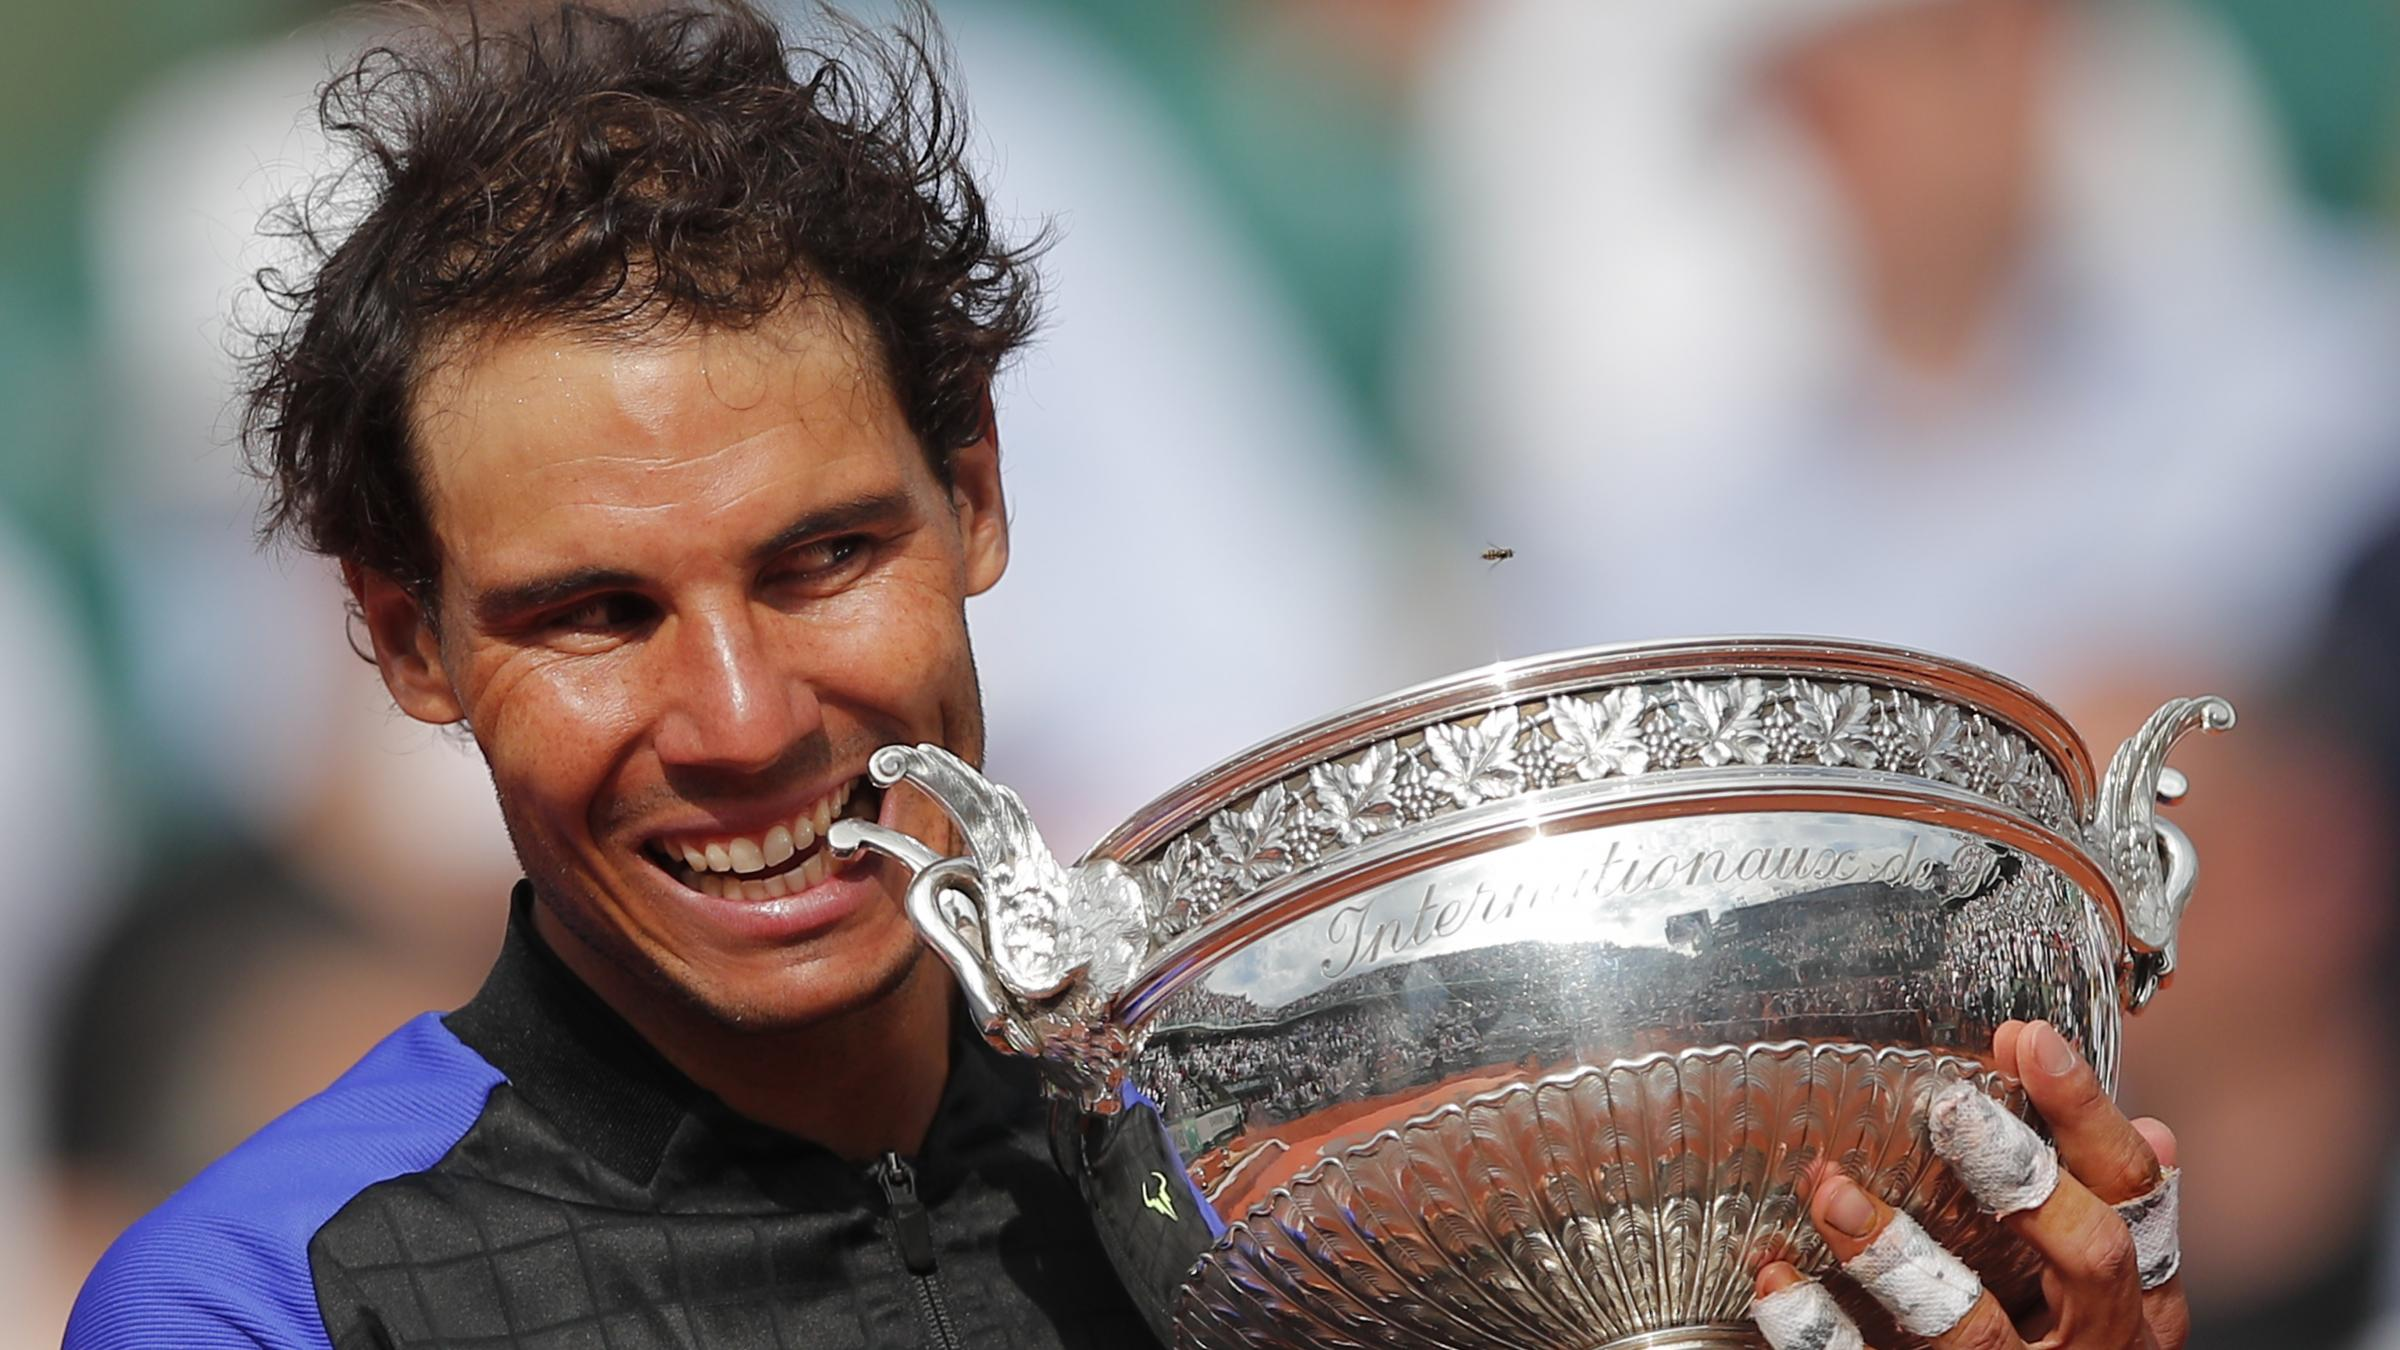 Buoyed by French Open win, Nadal eyes Wimby